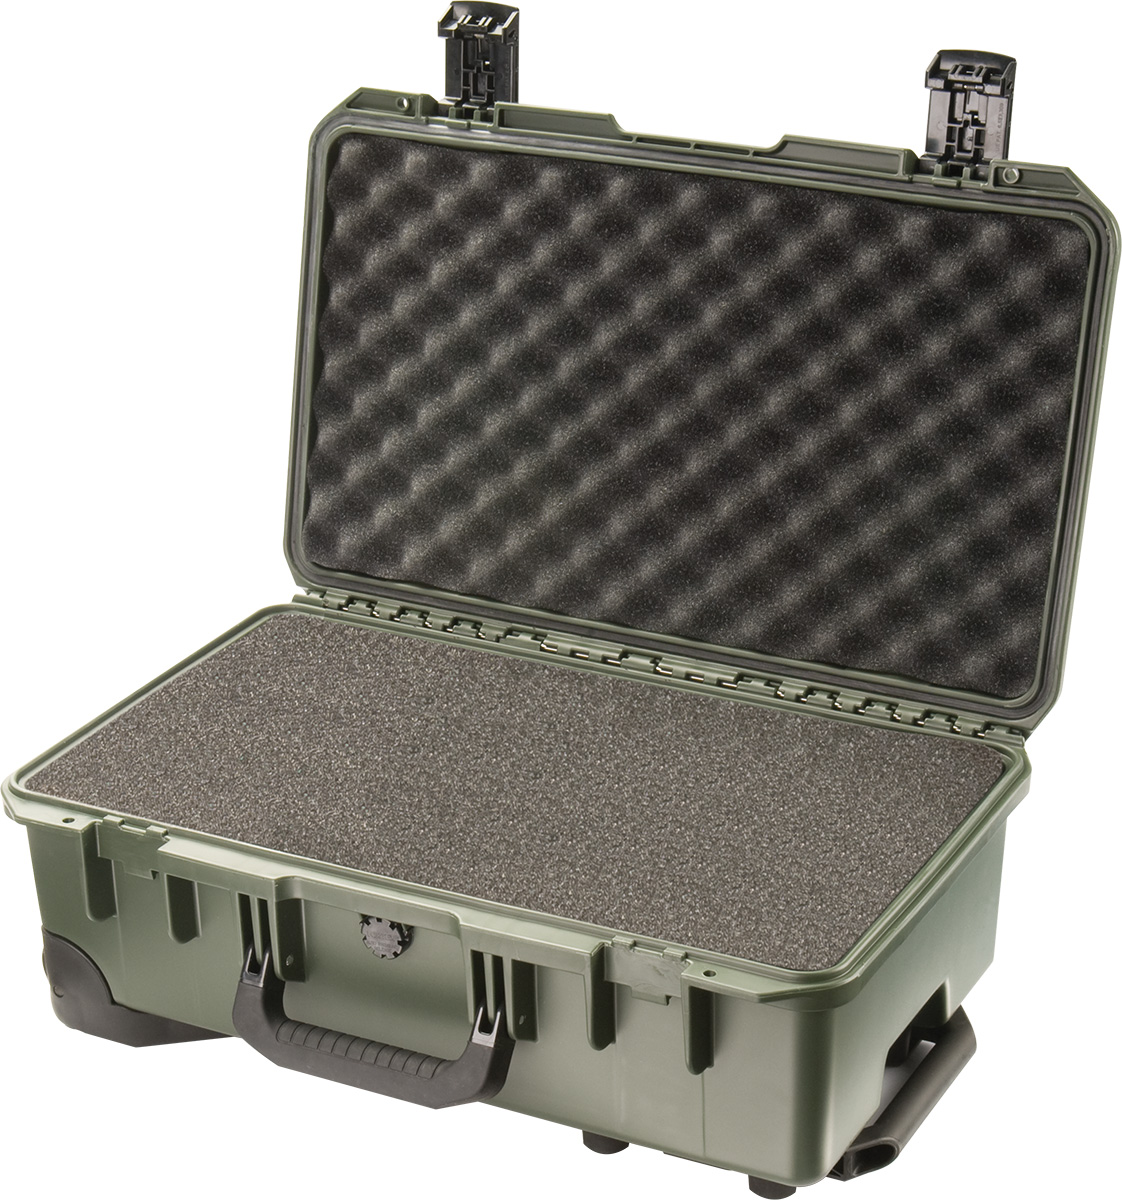 pelican im2500 carry on camera luggage case